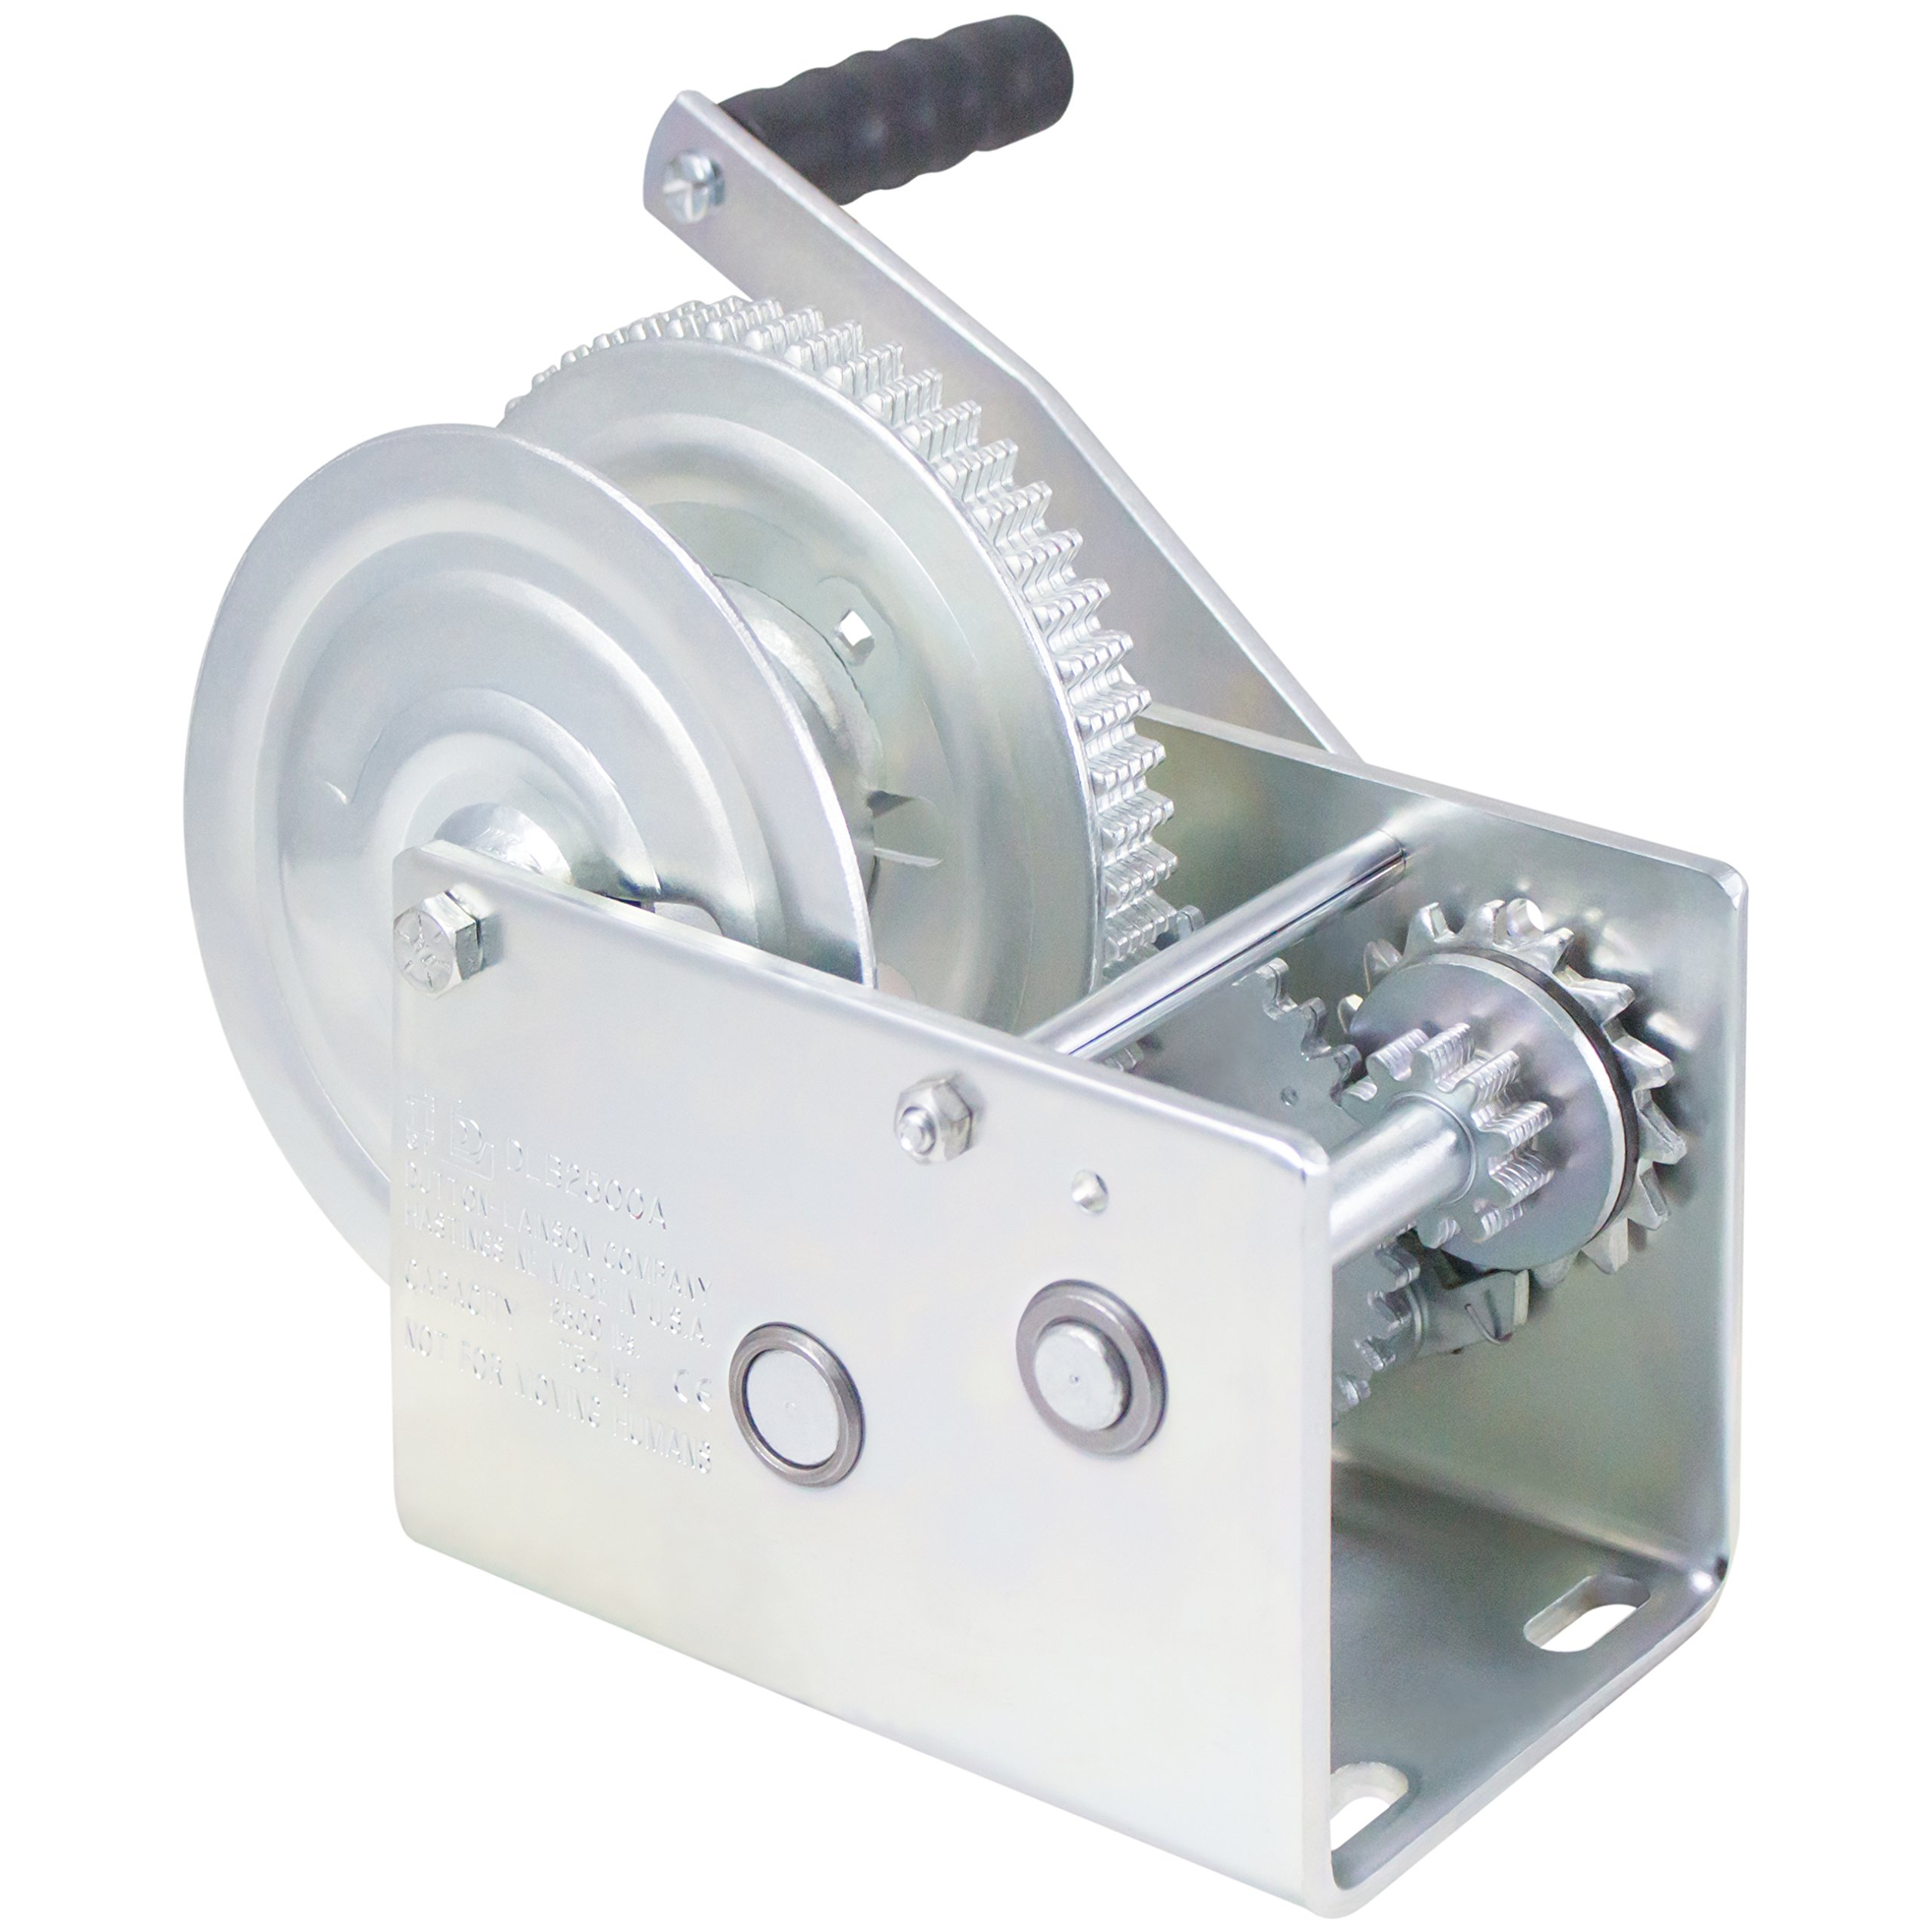 Dutton-Lainson DLB2500A Brake Winch 2500 lb by Dutton Lainson